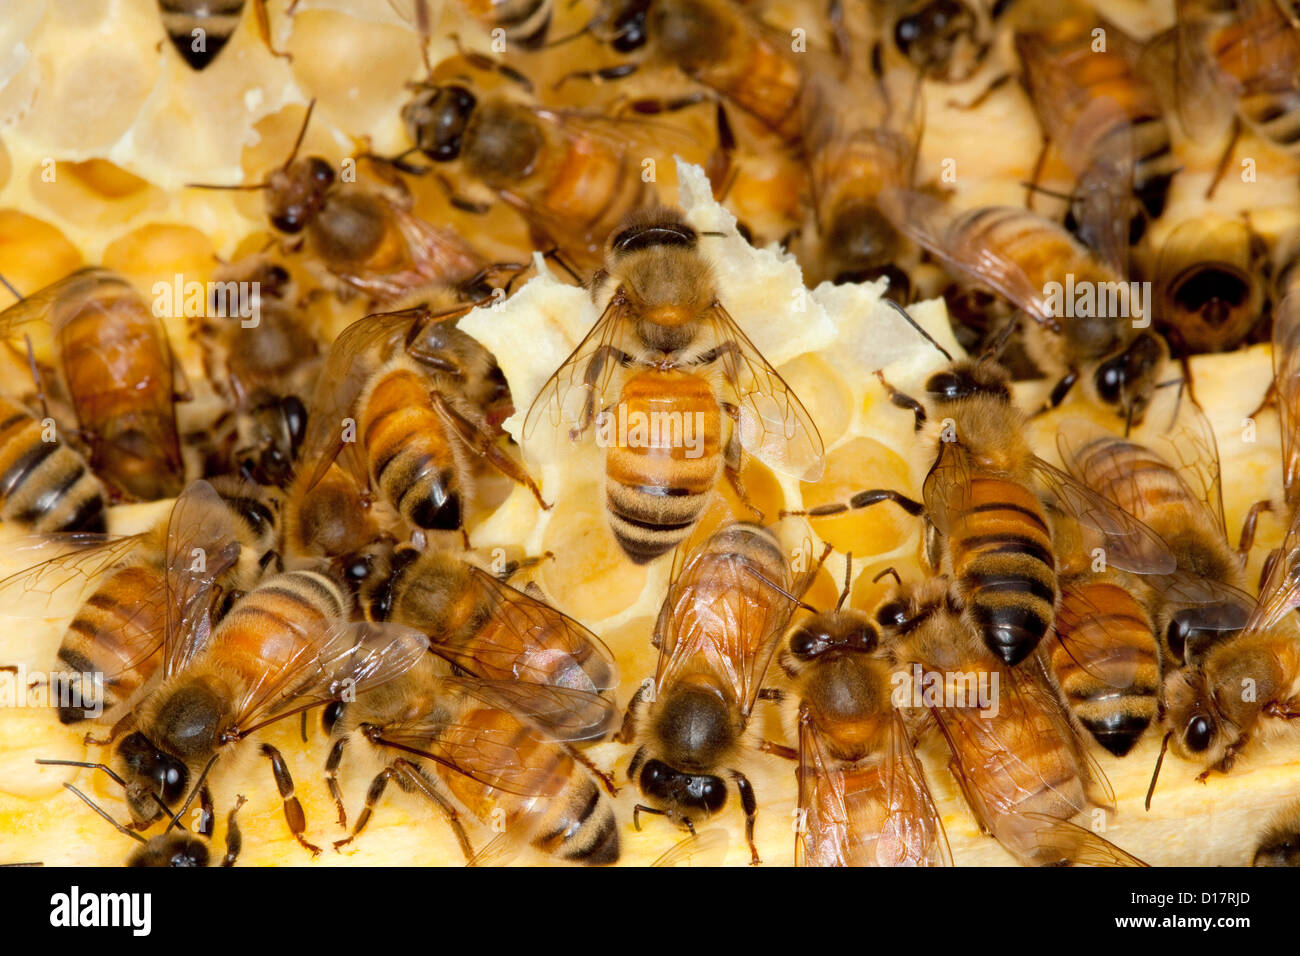 A colony of bees in a beehive. - Stock Image